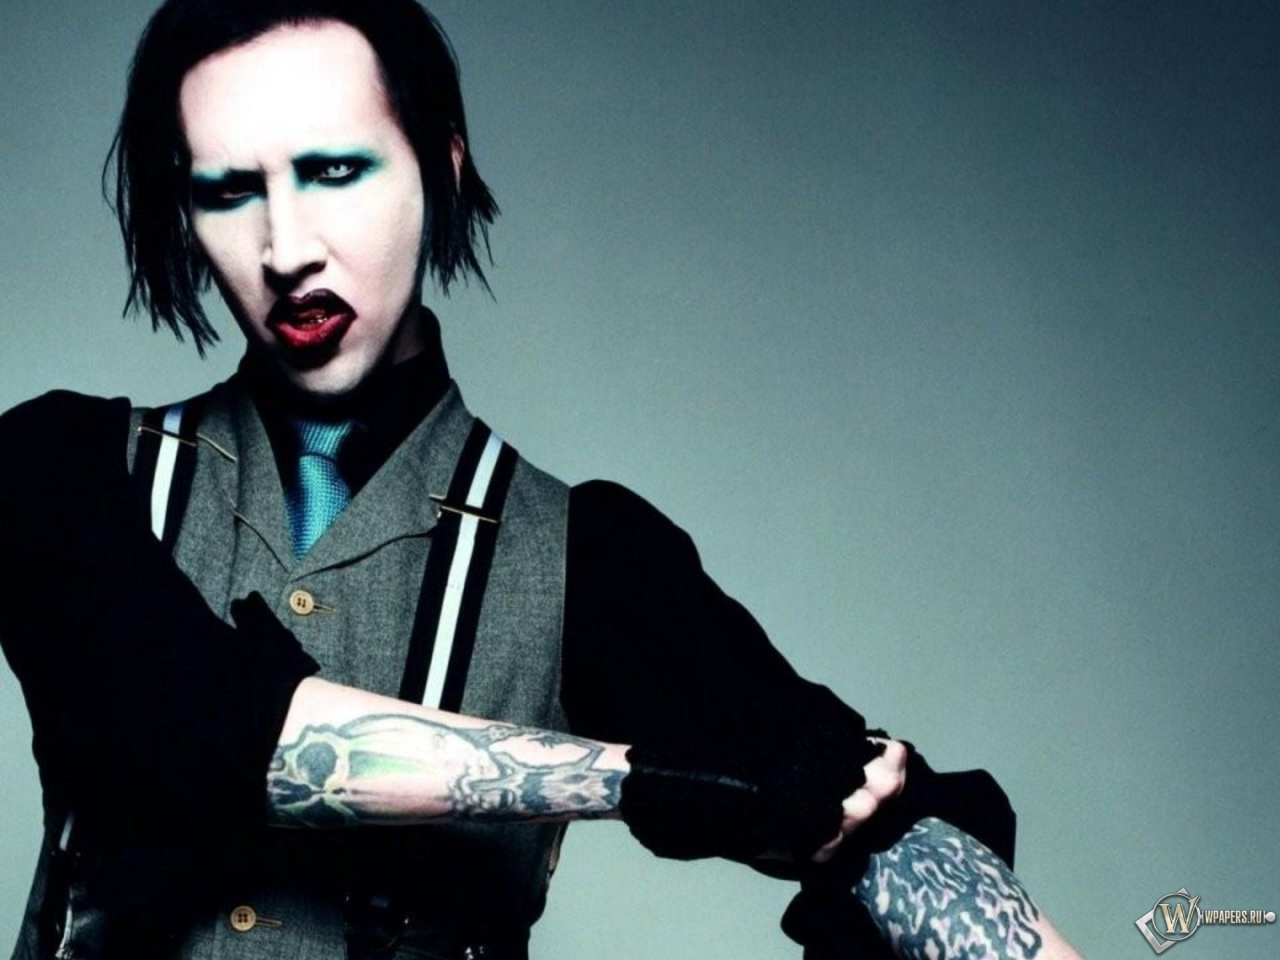 marilyn manson research paper Marilyn monroe essay examples a description of marilyn manson as a name that one hears everywhere they go 1,514 words 3 pages describing marilyn monroe and.